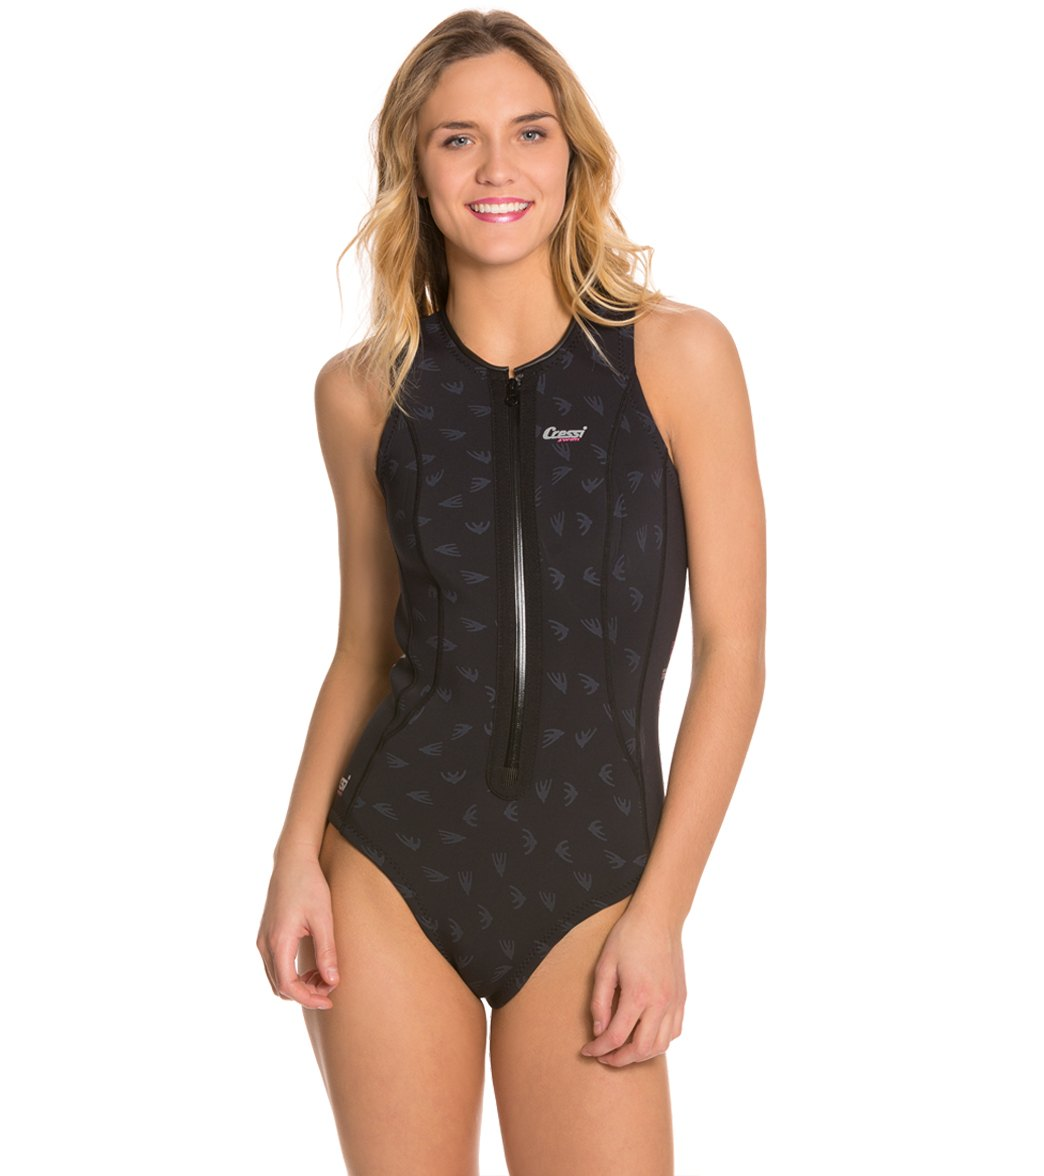 8d7536ab38277 Cressi Termico Lady 2mm Thermo Suit at SwimOutlet.com - Free Shipping